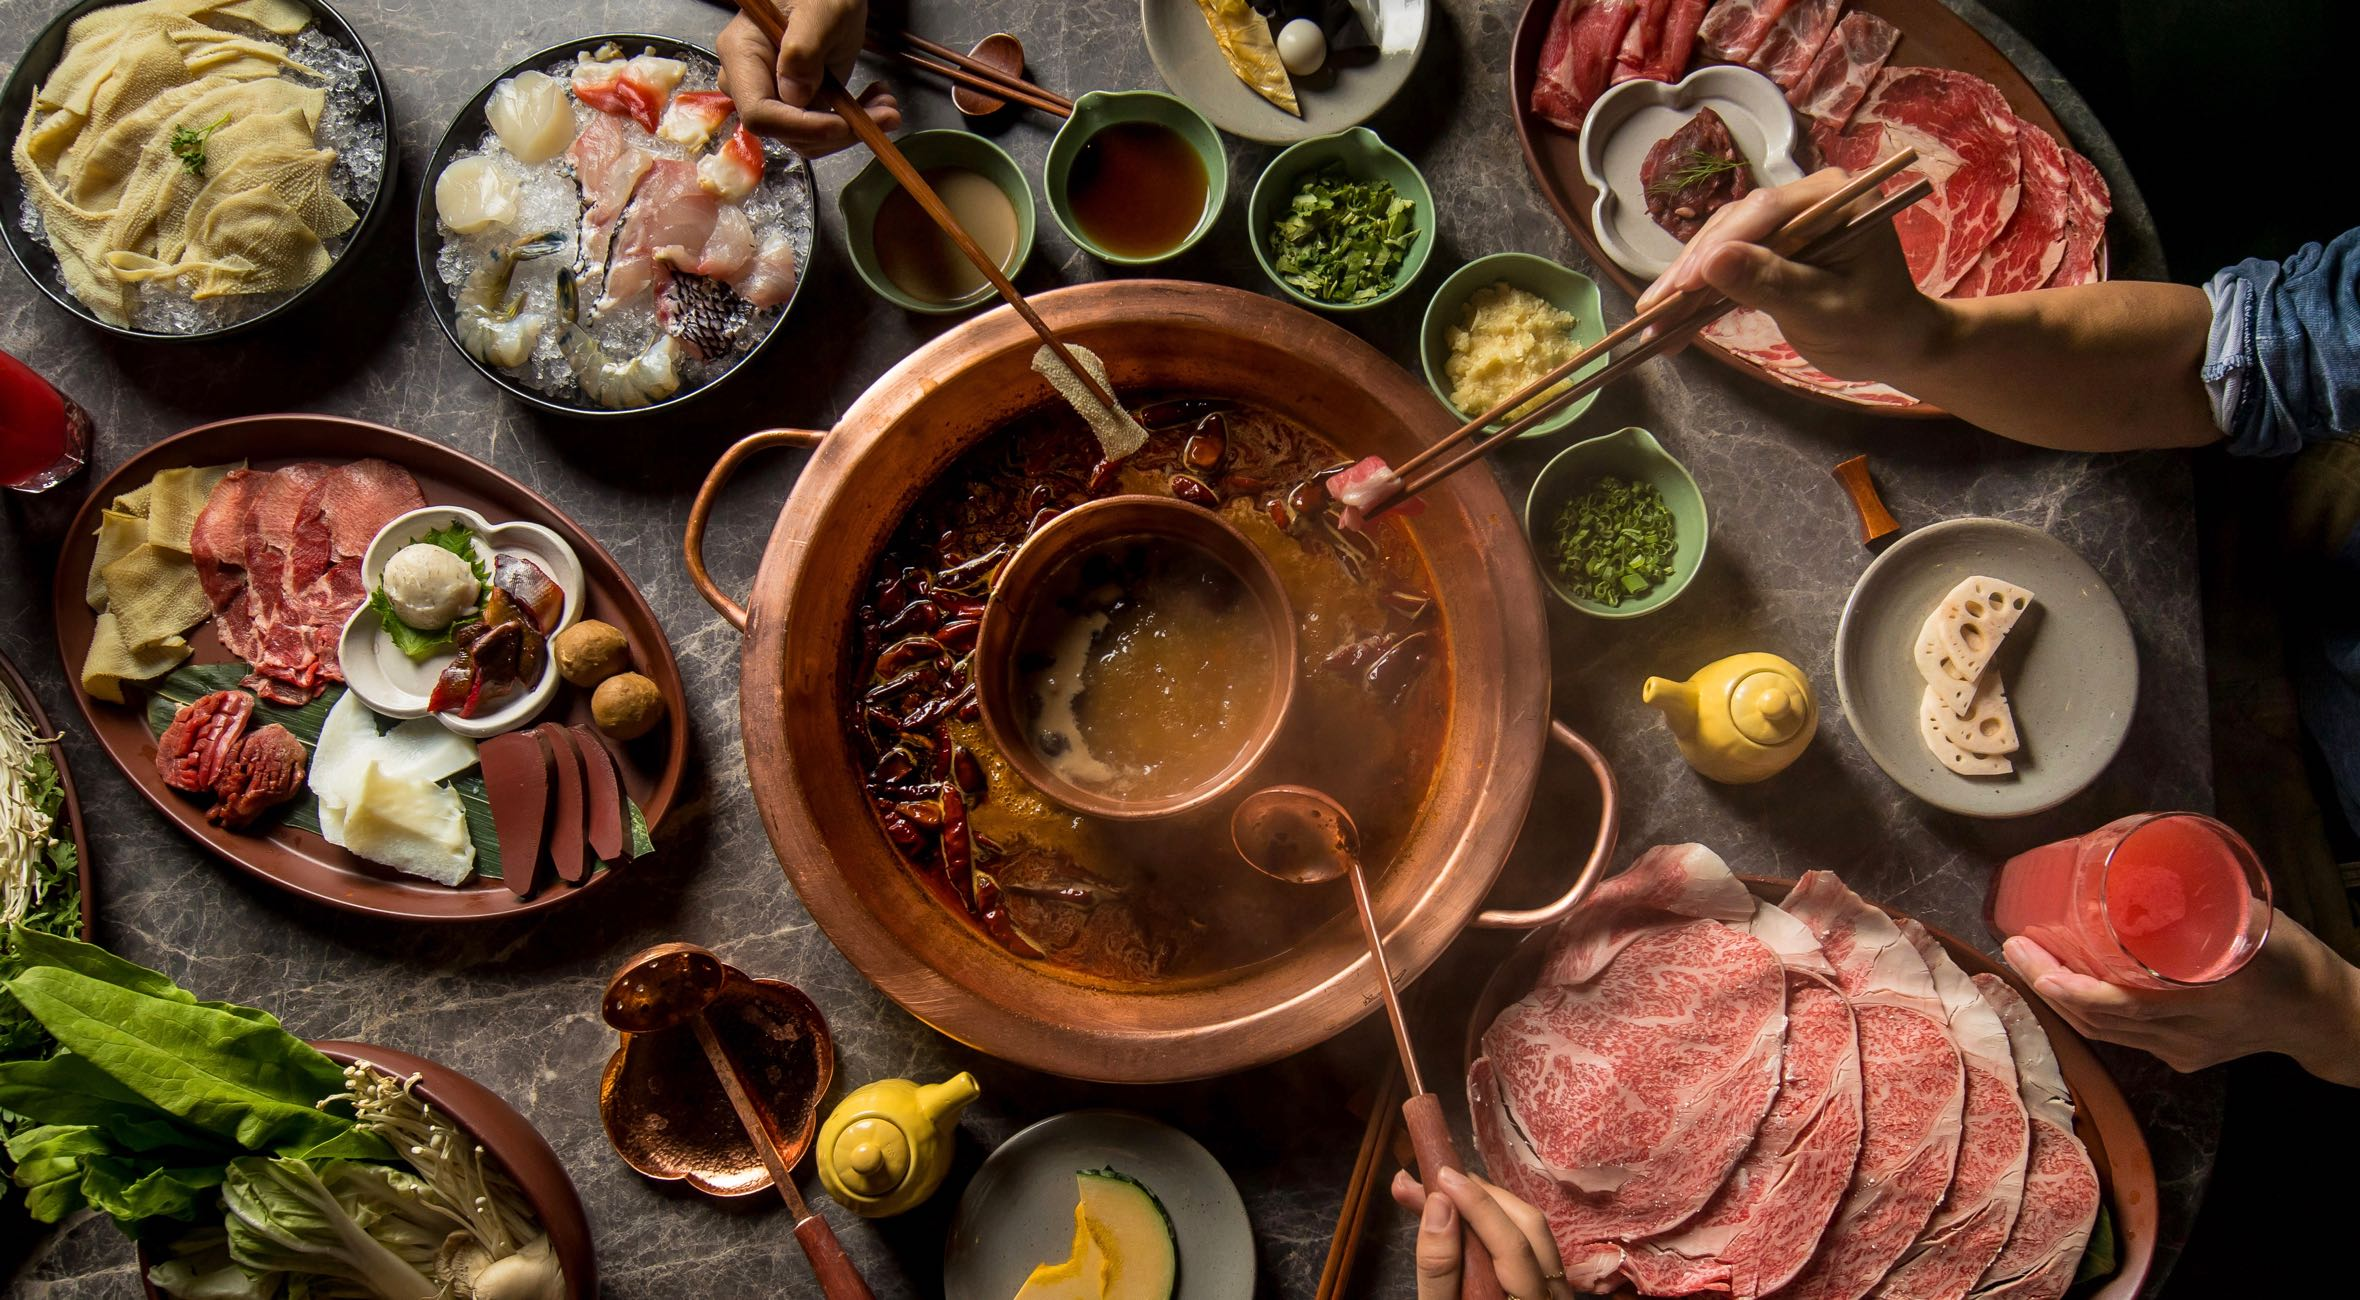 Combo Platter at Tang Hotpot in Chinatown – One of NYC's Best Hotpot Experiences